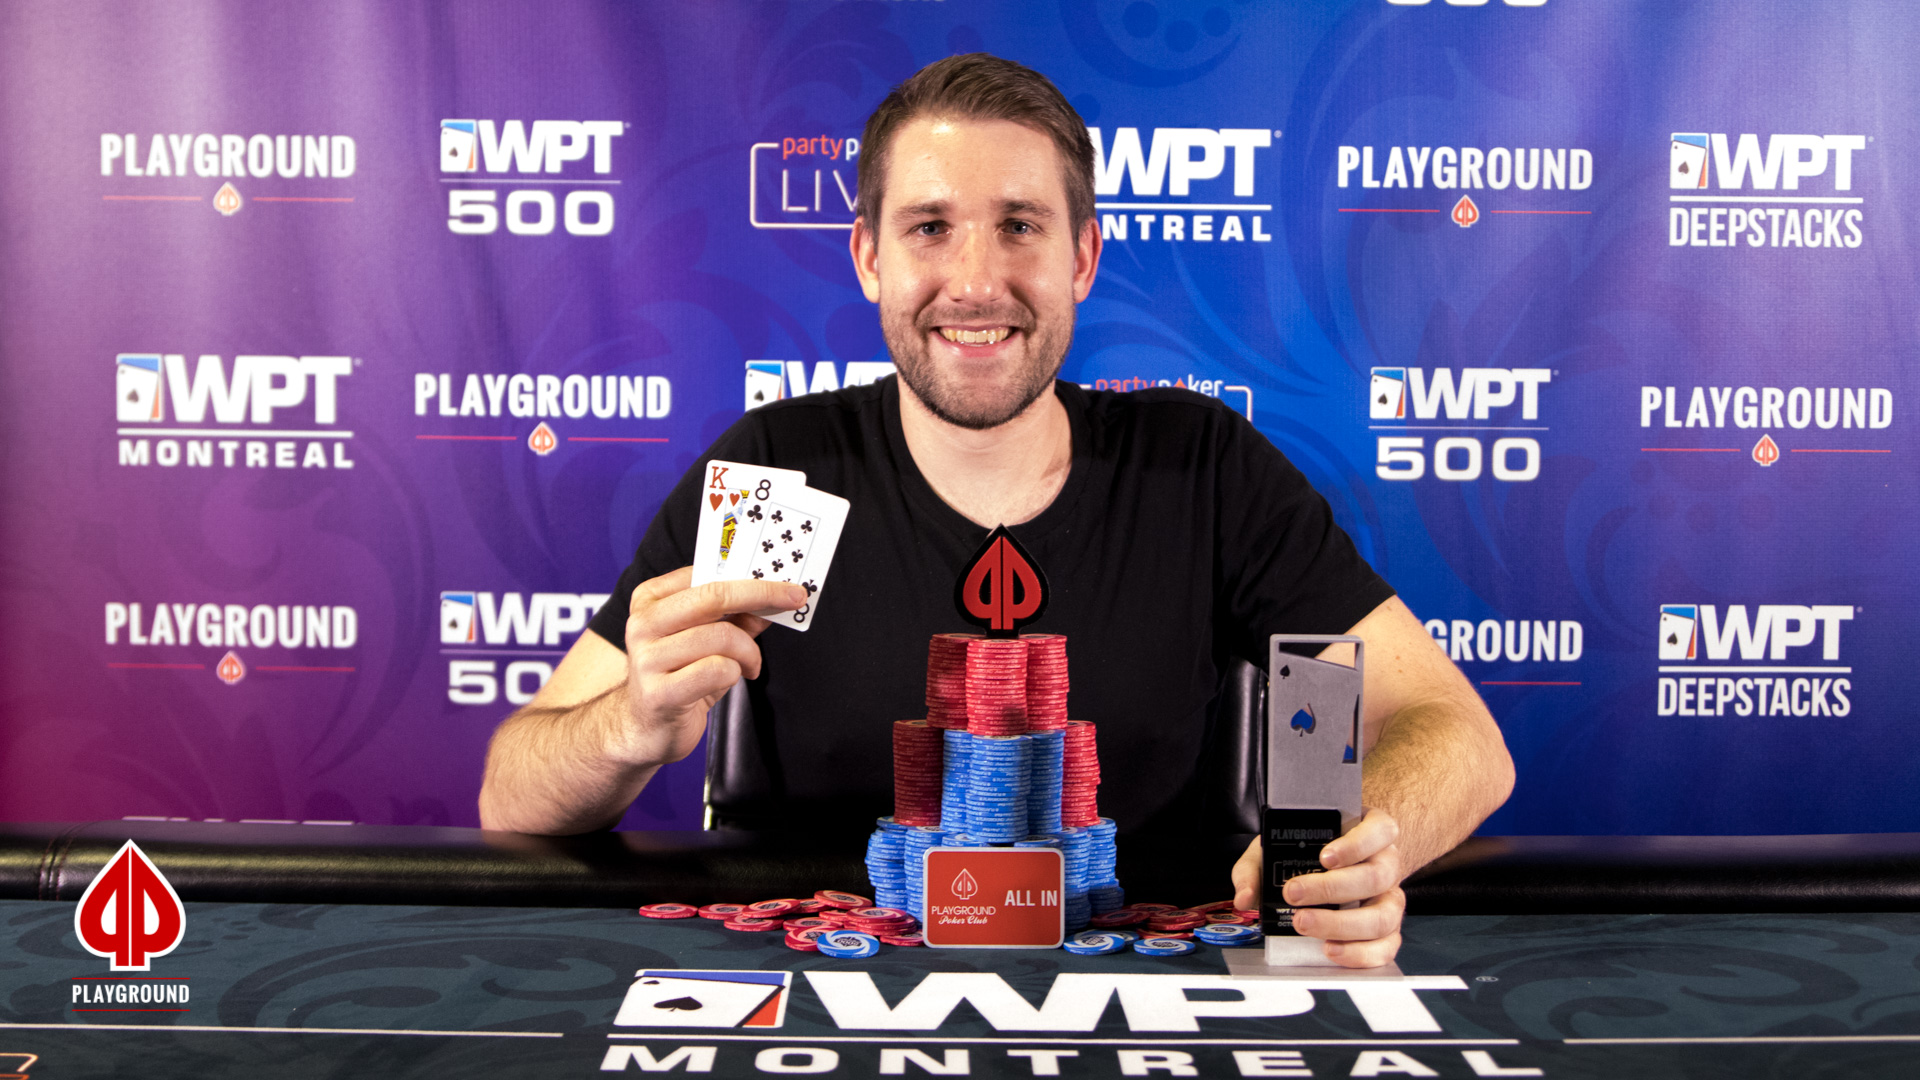 The High Roller Champion: Louis Boutin